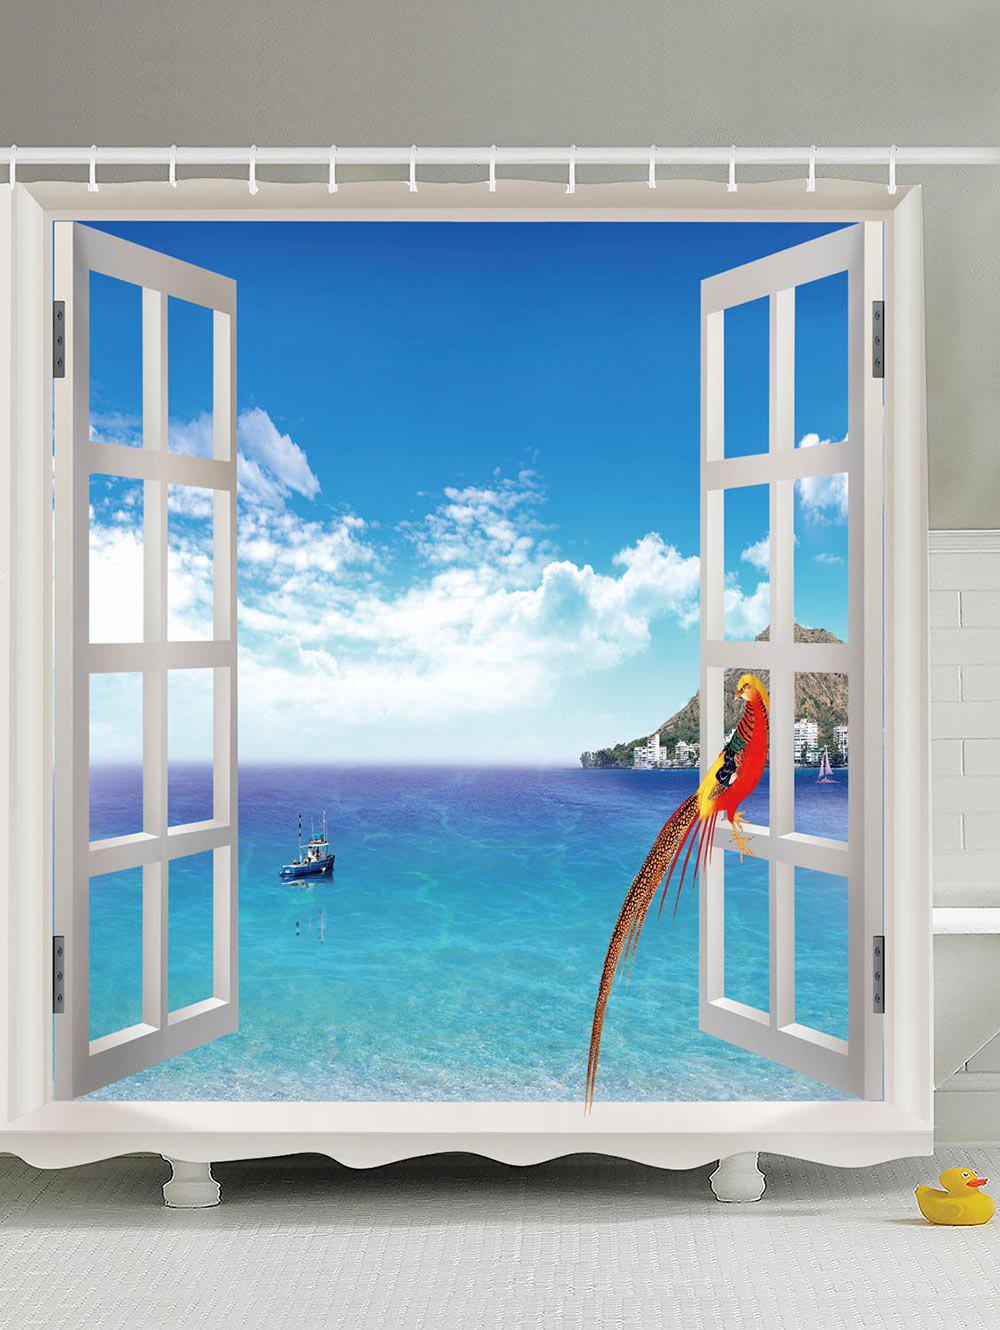 Window Seascape Print Bathroom Shower Curtain popular big electric one wheel unicycle smart electric motorcycle high speed one wheel scooter hoverboard electric skateboard